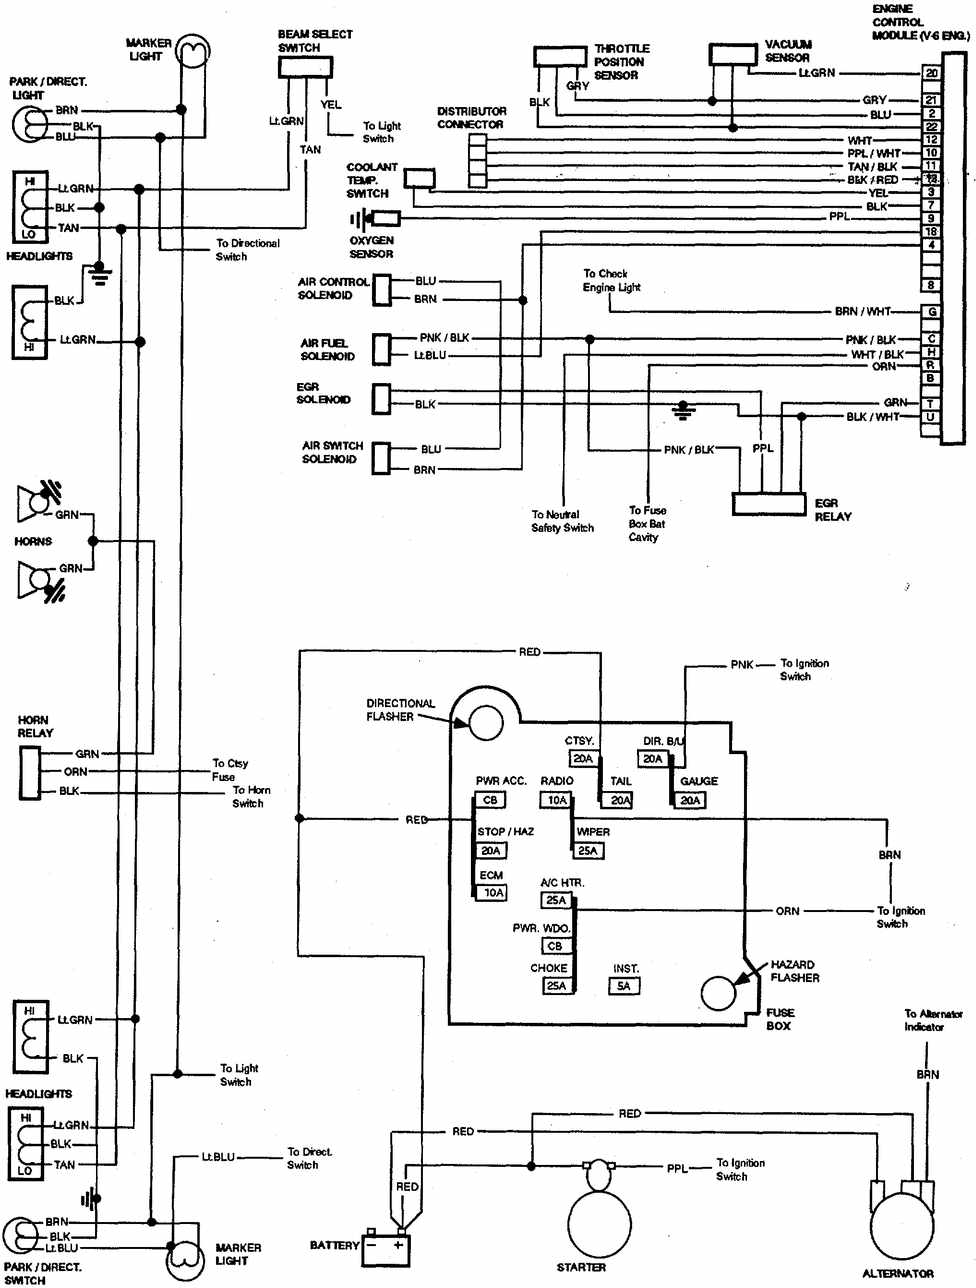 2004 chevy silverado 1500 wiring diagram